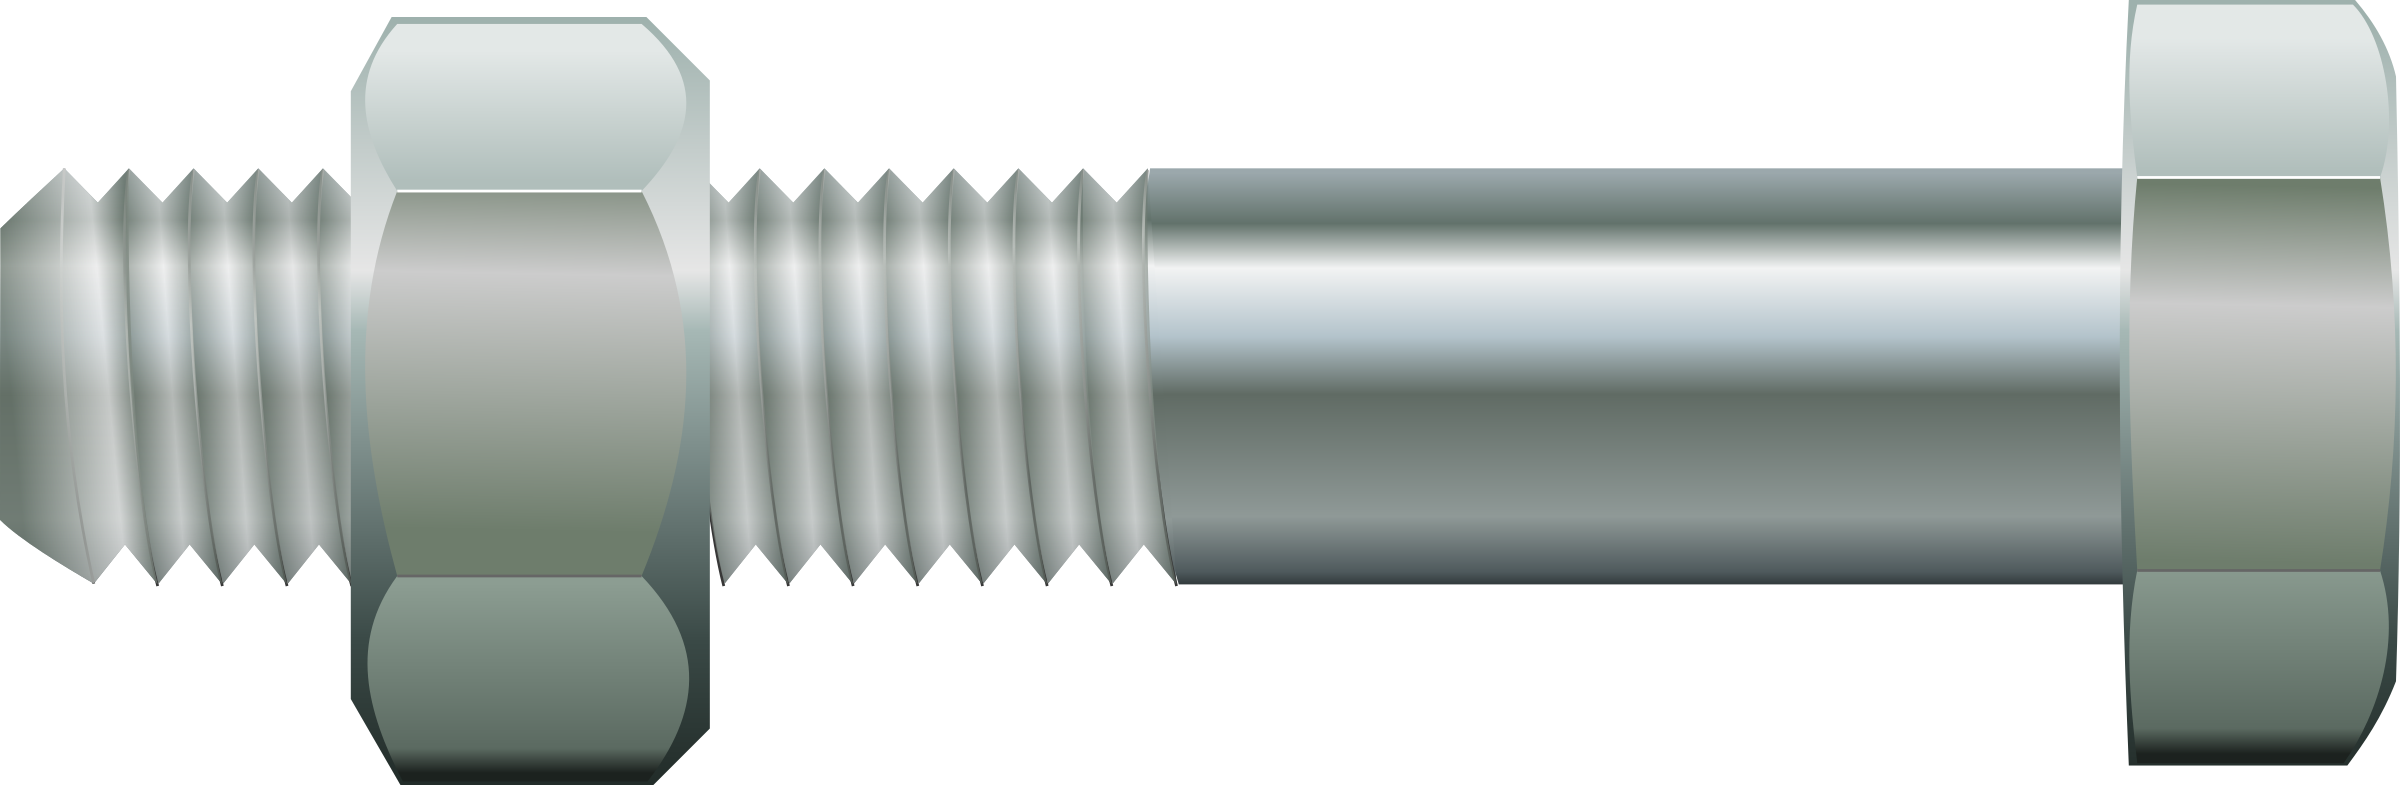 a simple bolt by donchico